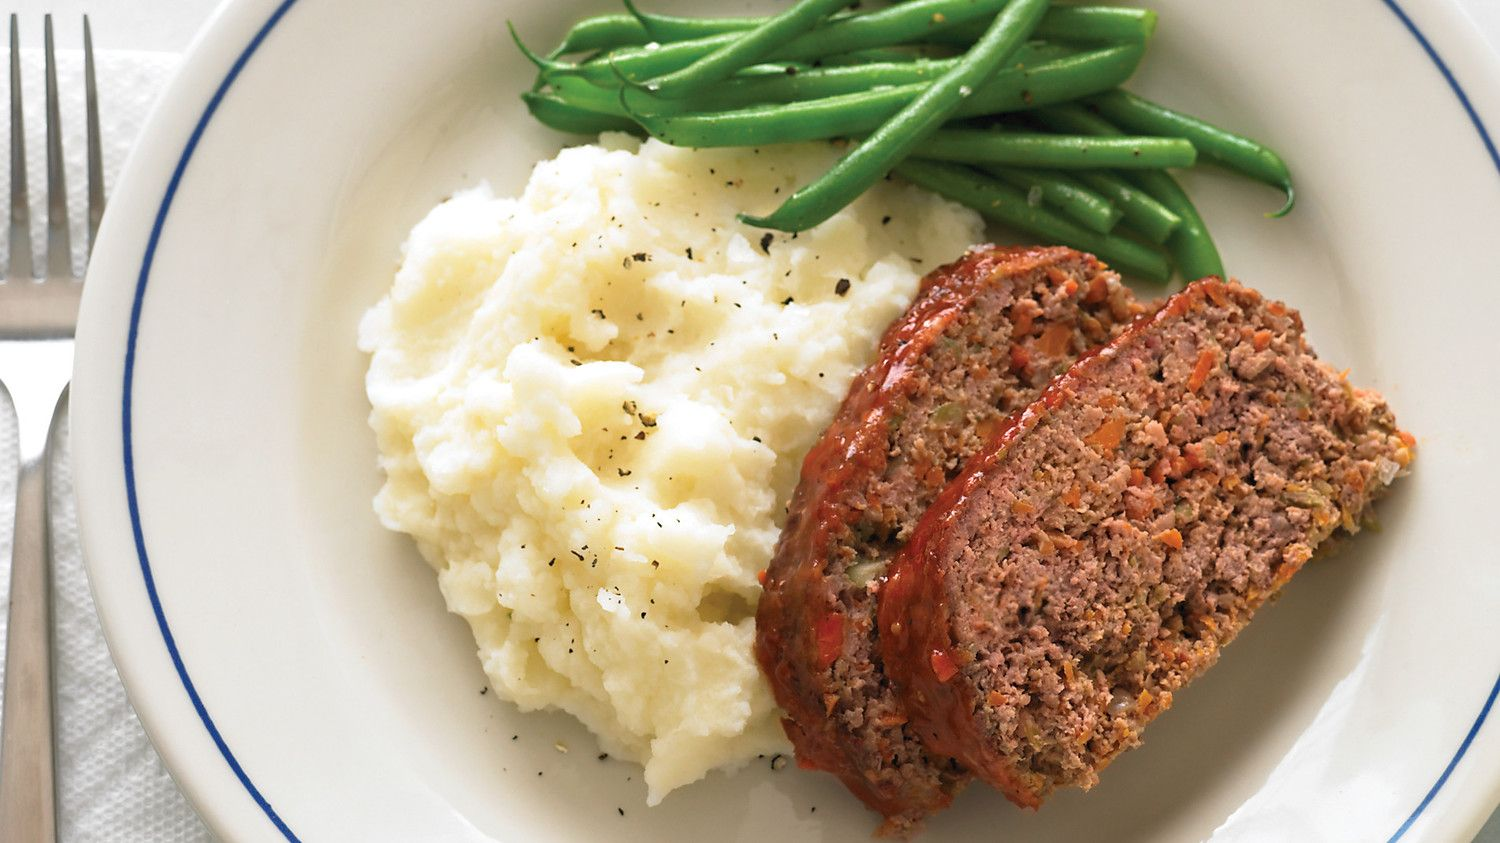 Meatloaf with beans and mashed potato